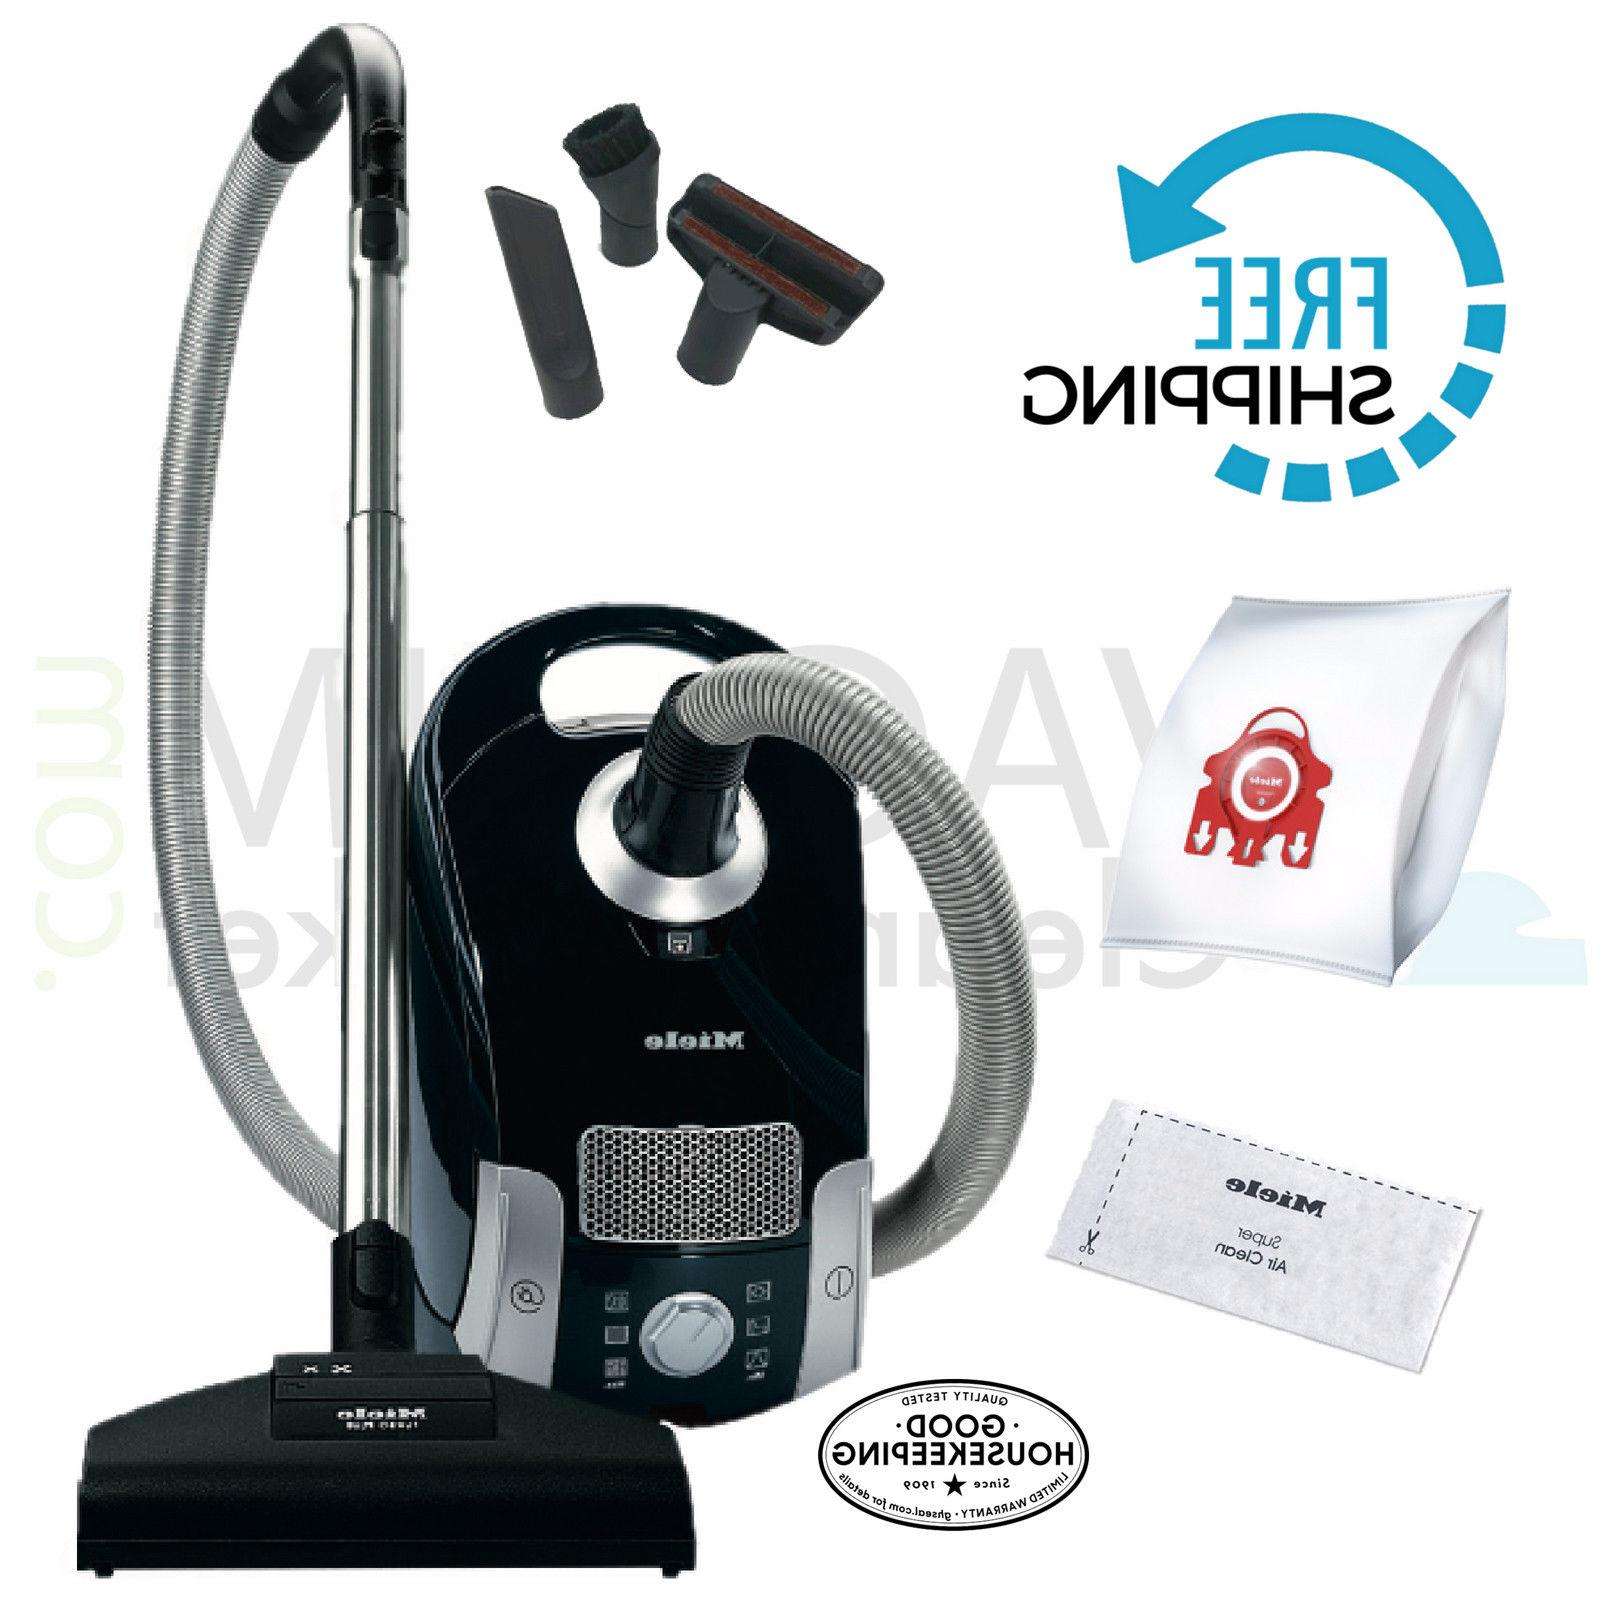 Miele Turbo Team C1 Compact Vacuum Cleaner | Now $100 Off!